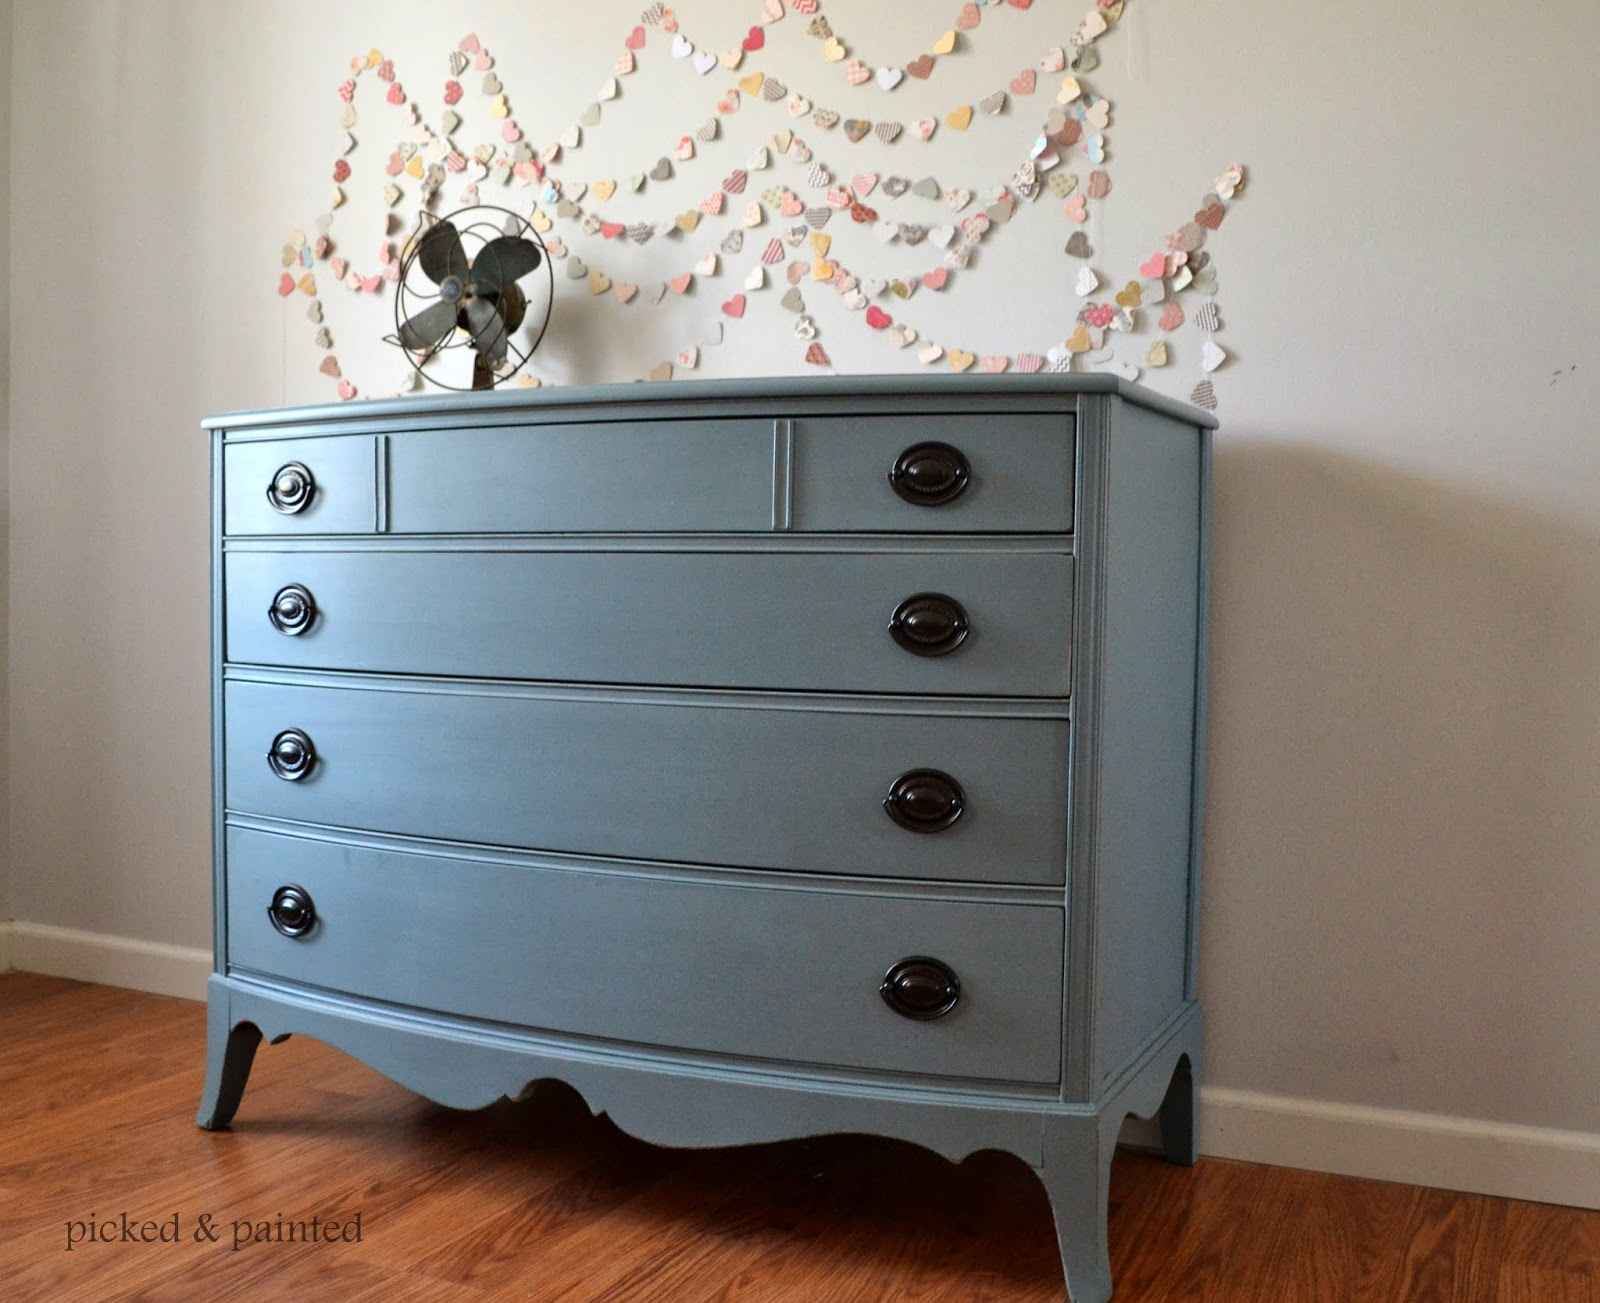 painting designs on furniture. Helen Nichole Designs. Furniture Made Pretty Painting Designs On E